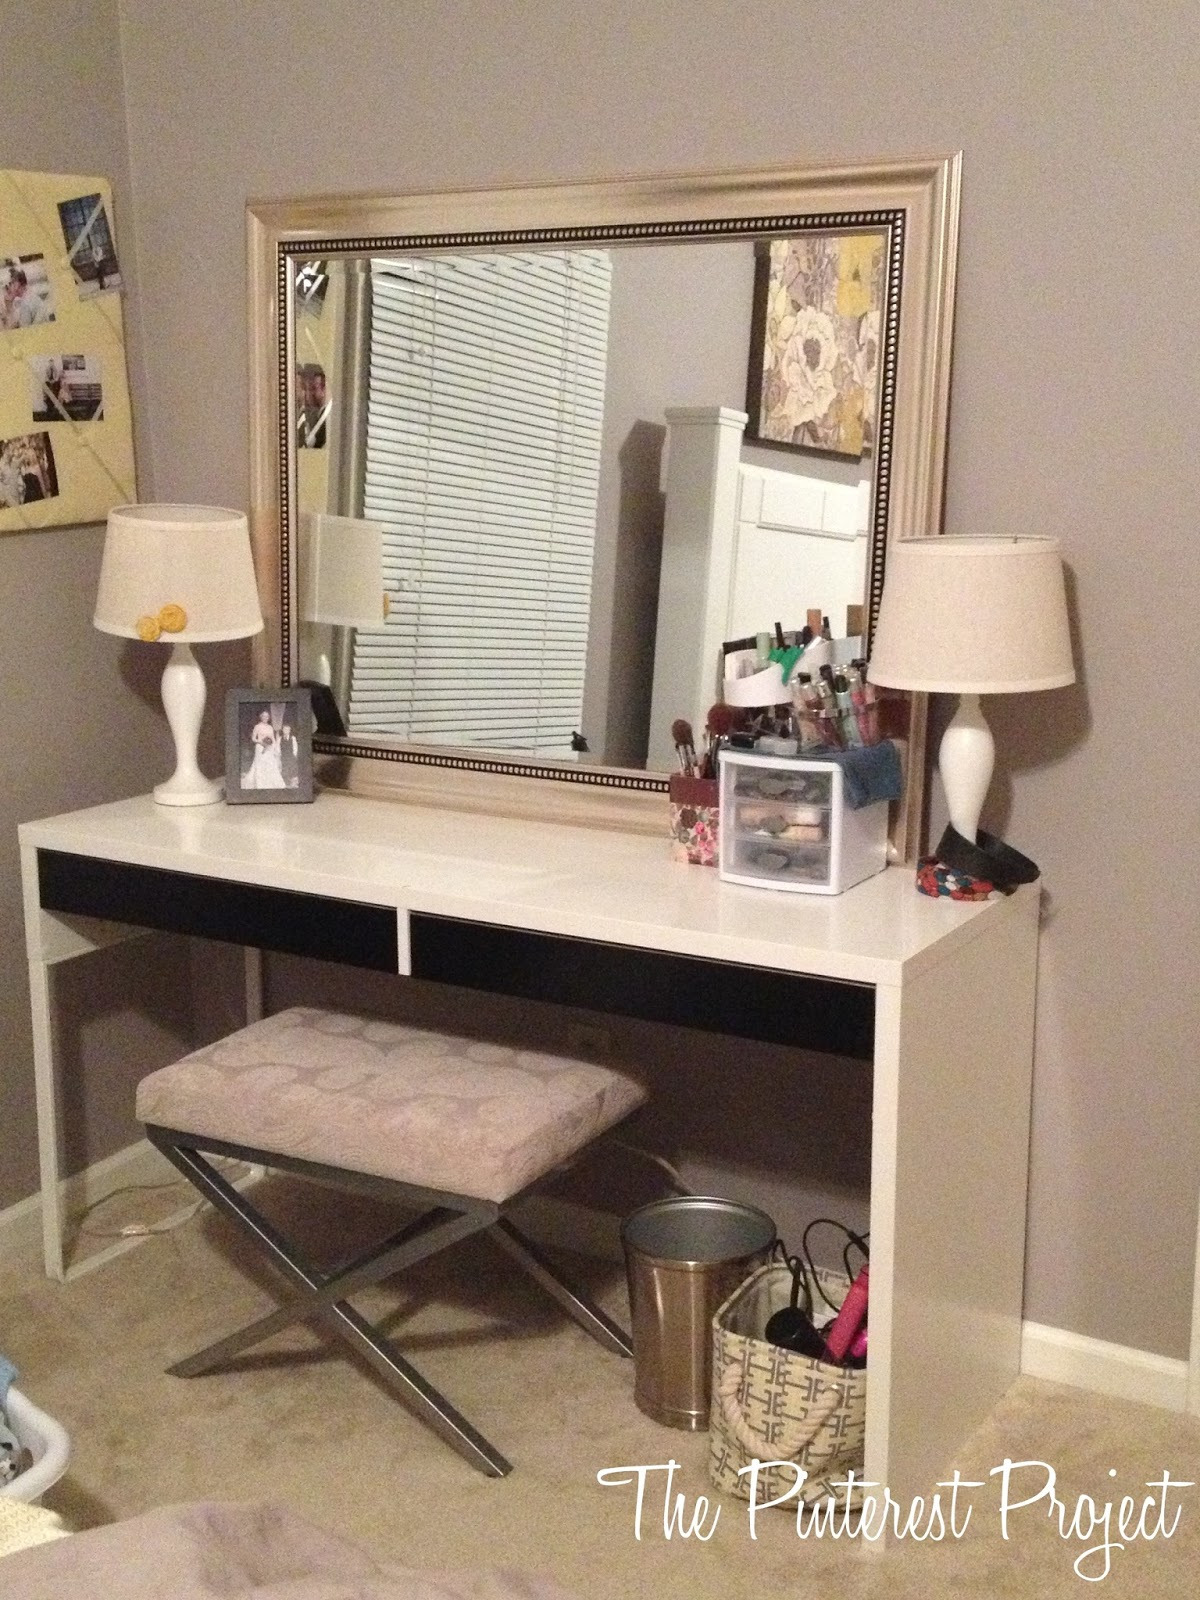 Ikea hack desk into vanity the pinterest project for Vanity tables ikea